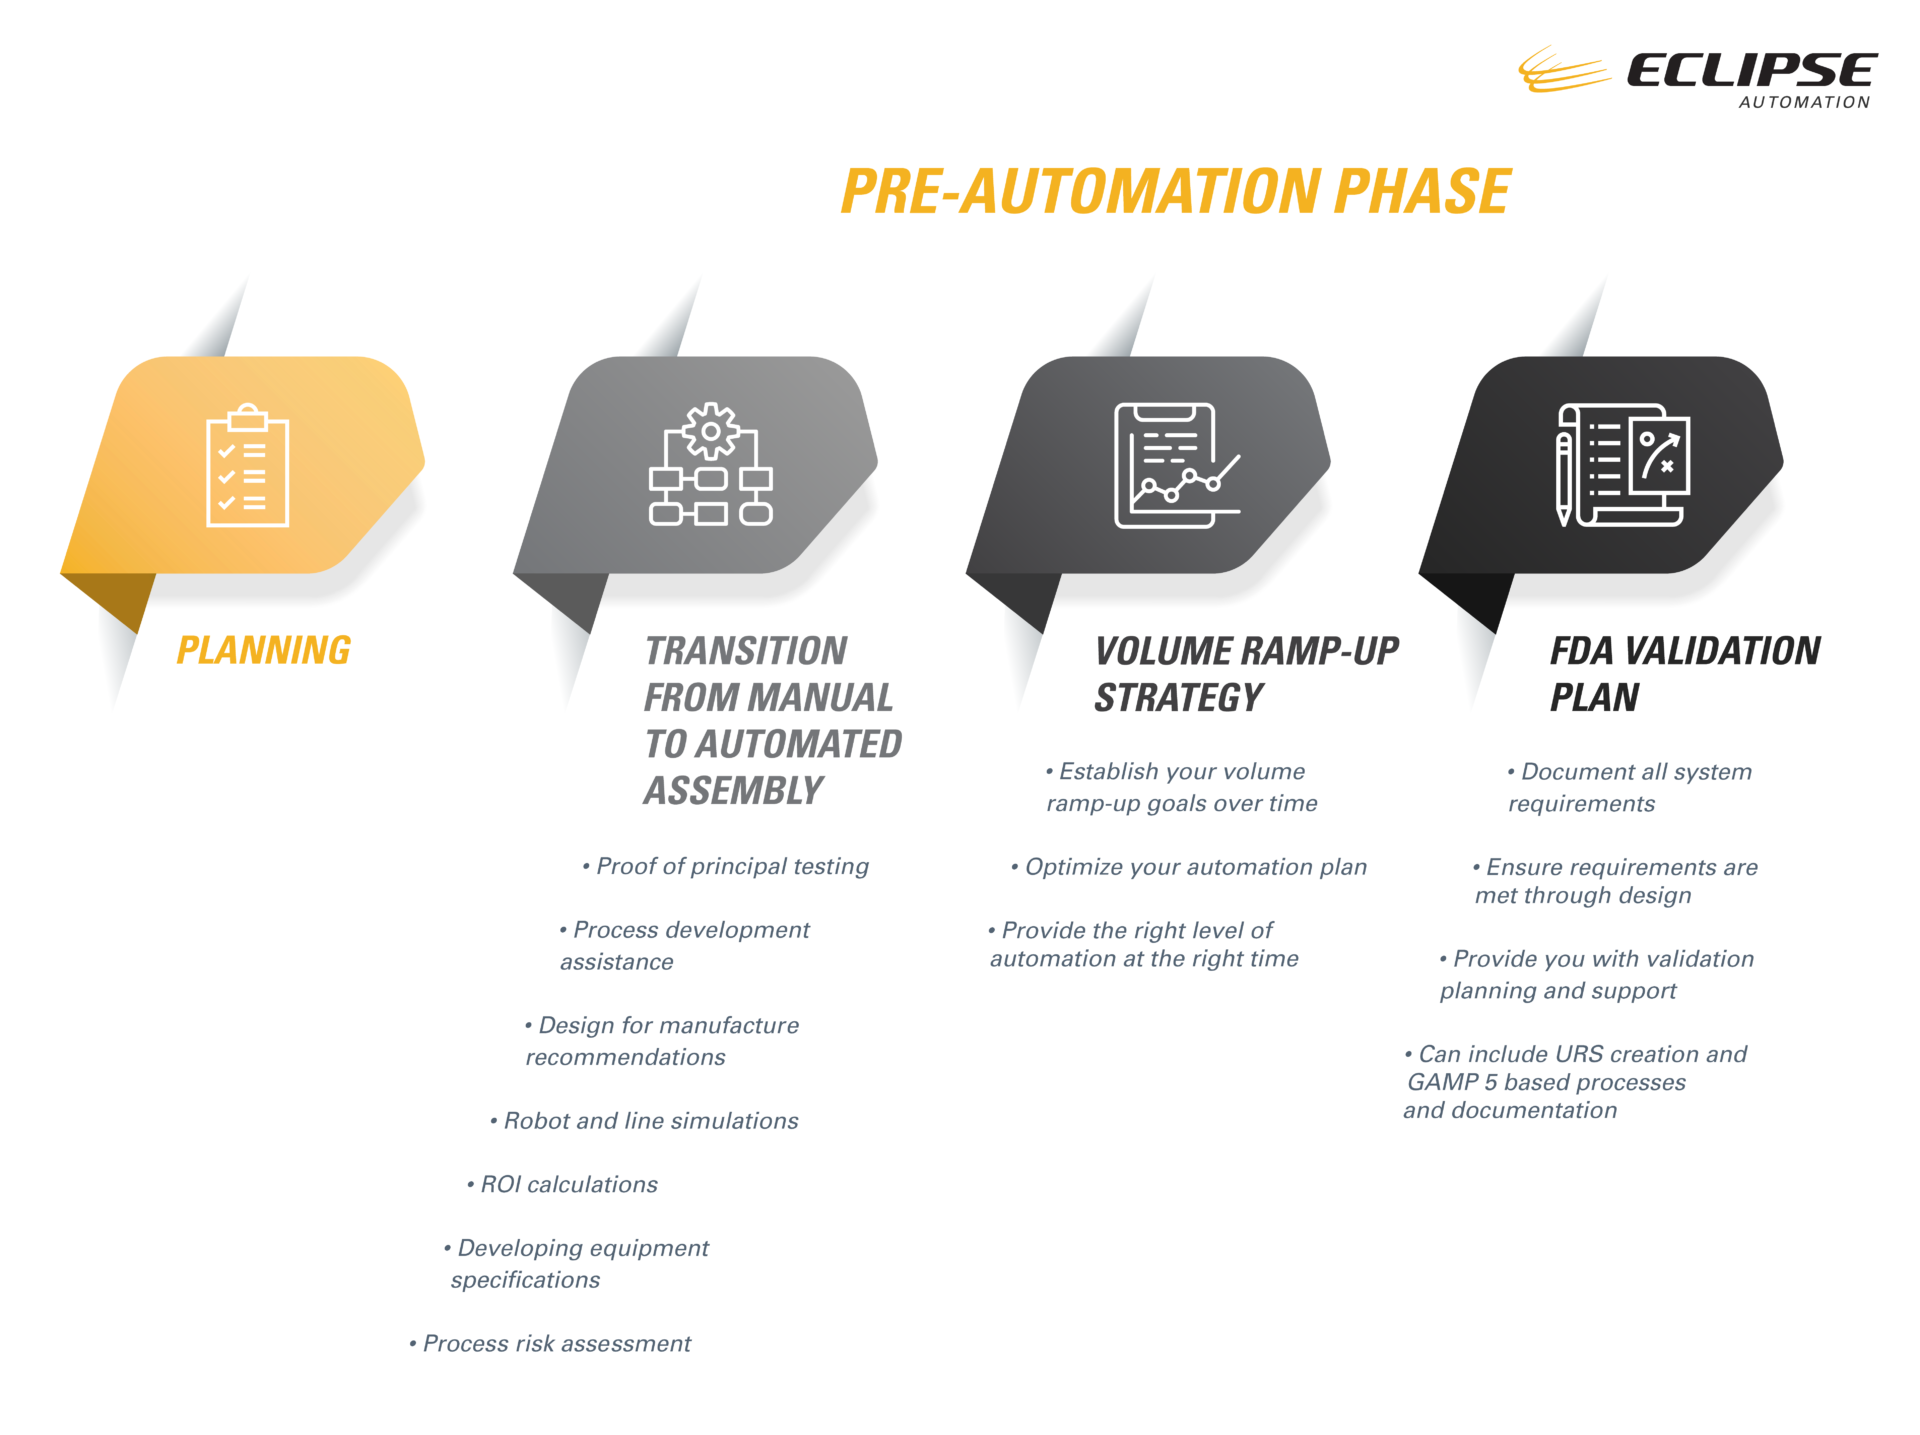 Eclipse Automation Workflow Pre-Automation Phase